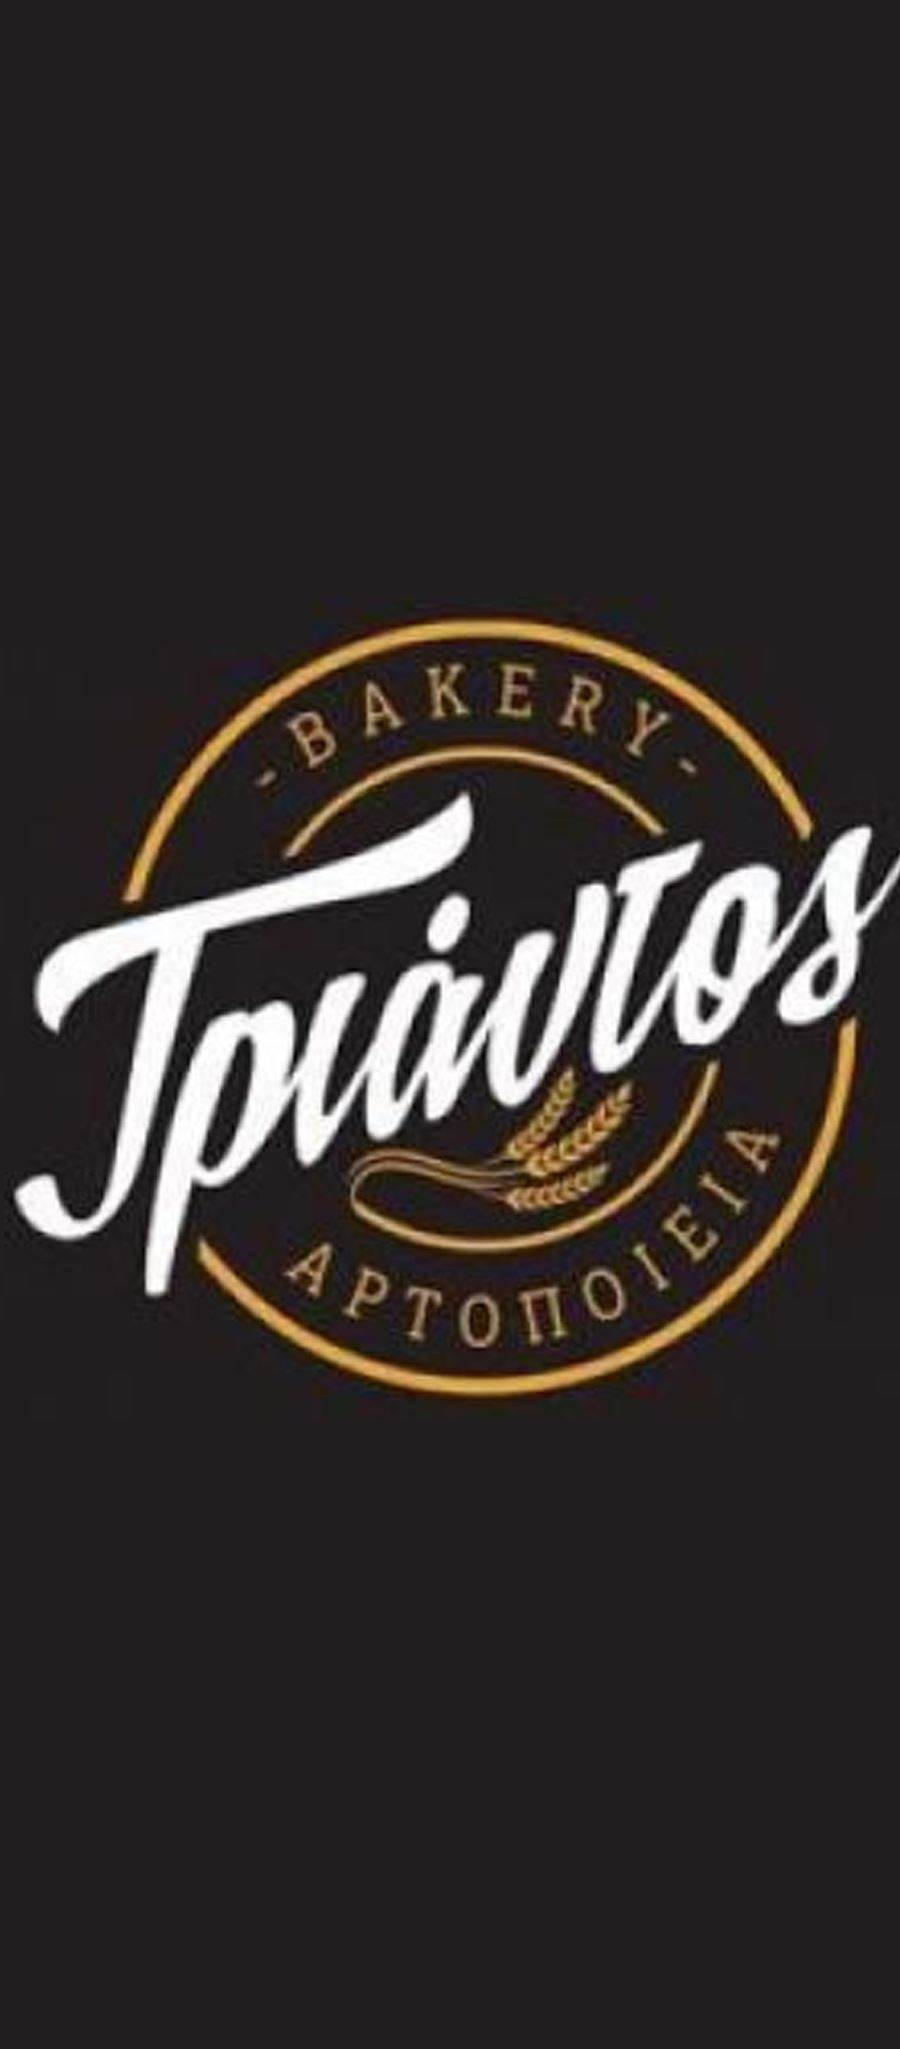 TRIANTOS BAKERY